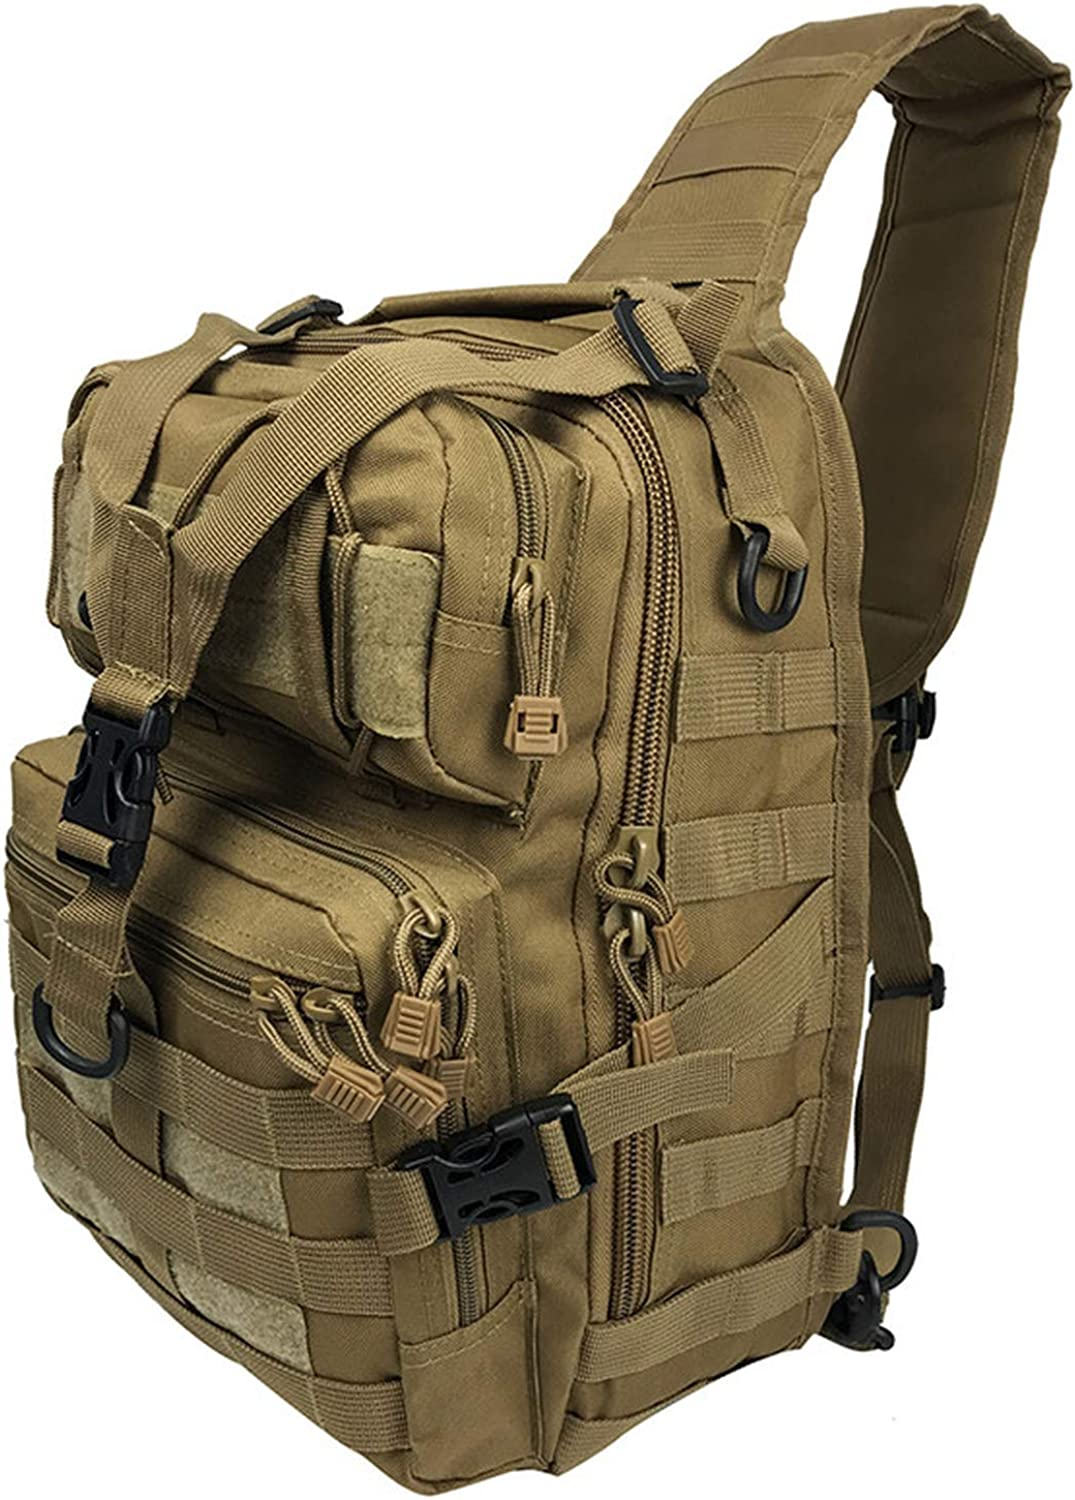 Military Pack Backpack Army Waterproof Shoulder Bags Small Rucksack Outdoor Hiking Camping